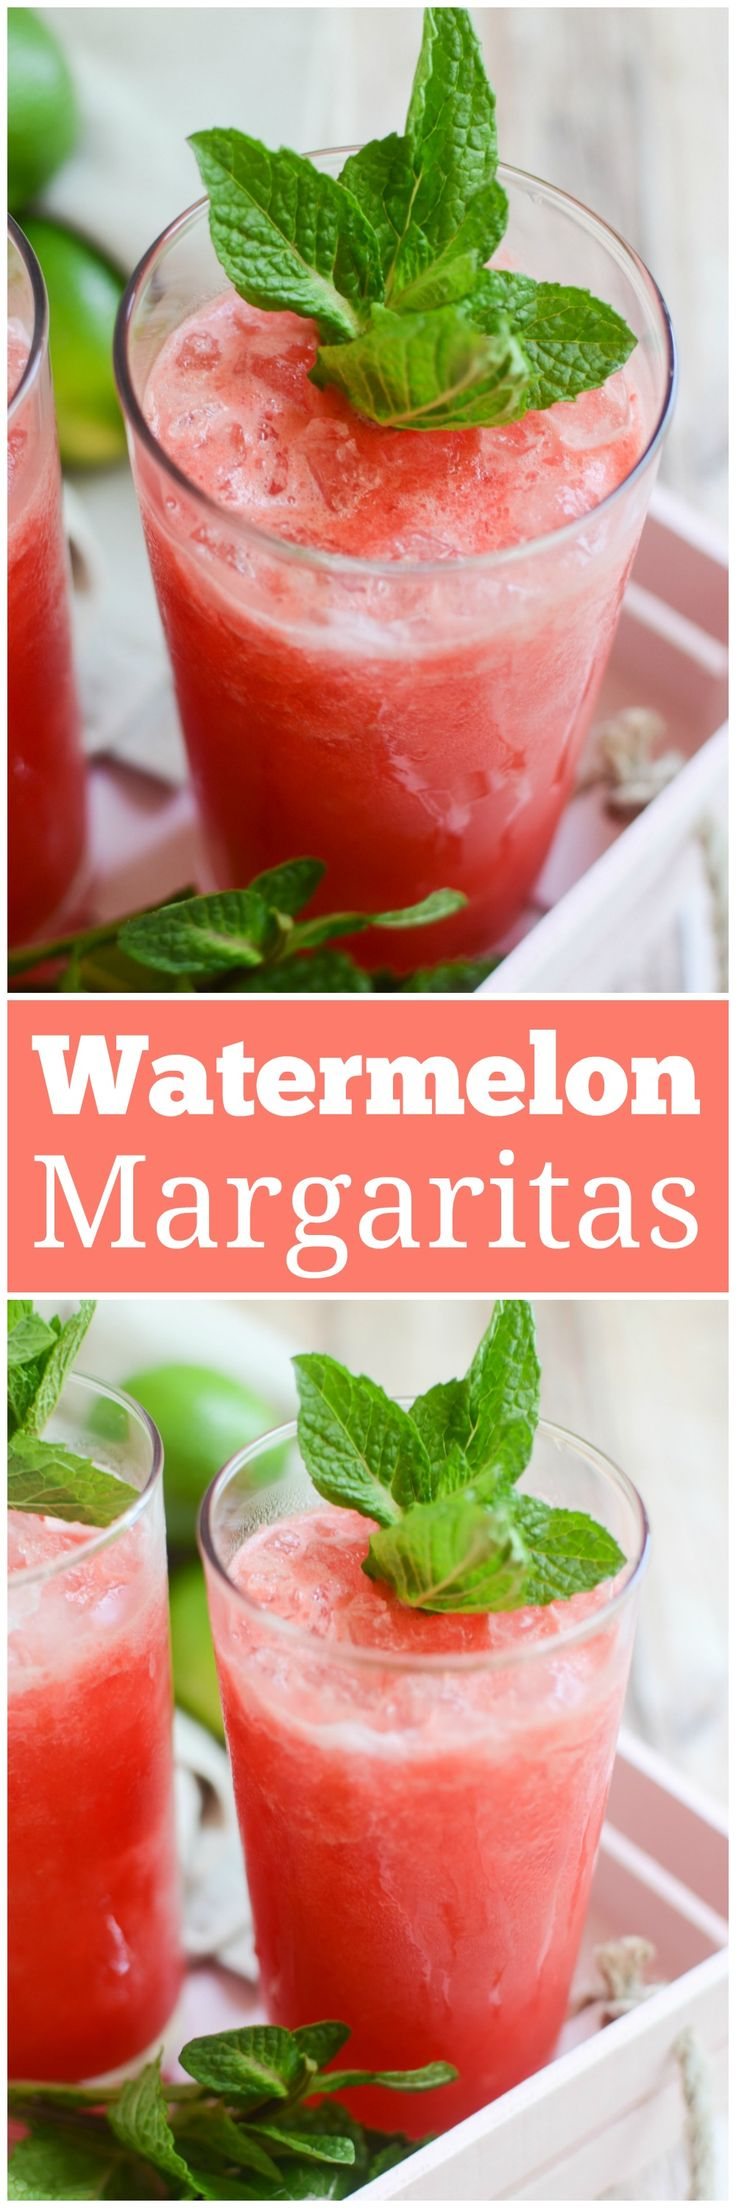 Jun 6, 2020 – Watermelon Mint Margaritas – the most refreshing summer cocktail! Fresh watrmelon is blended with tequila,…